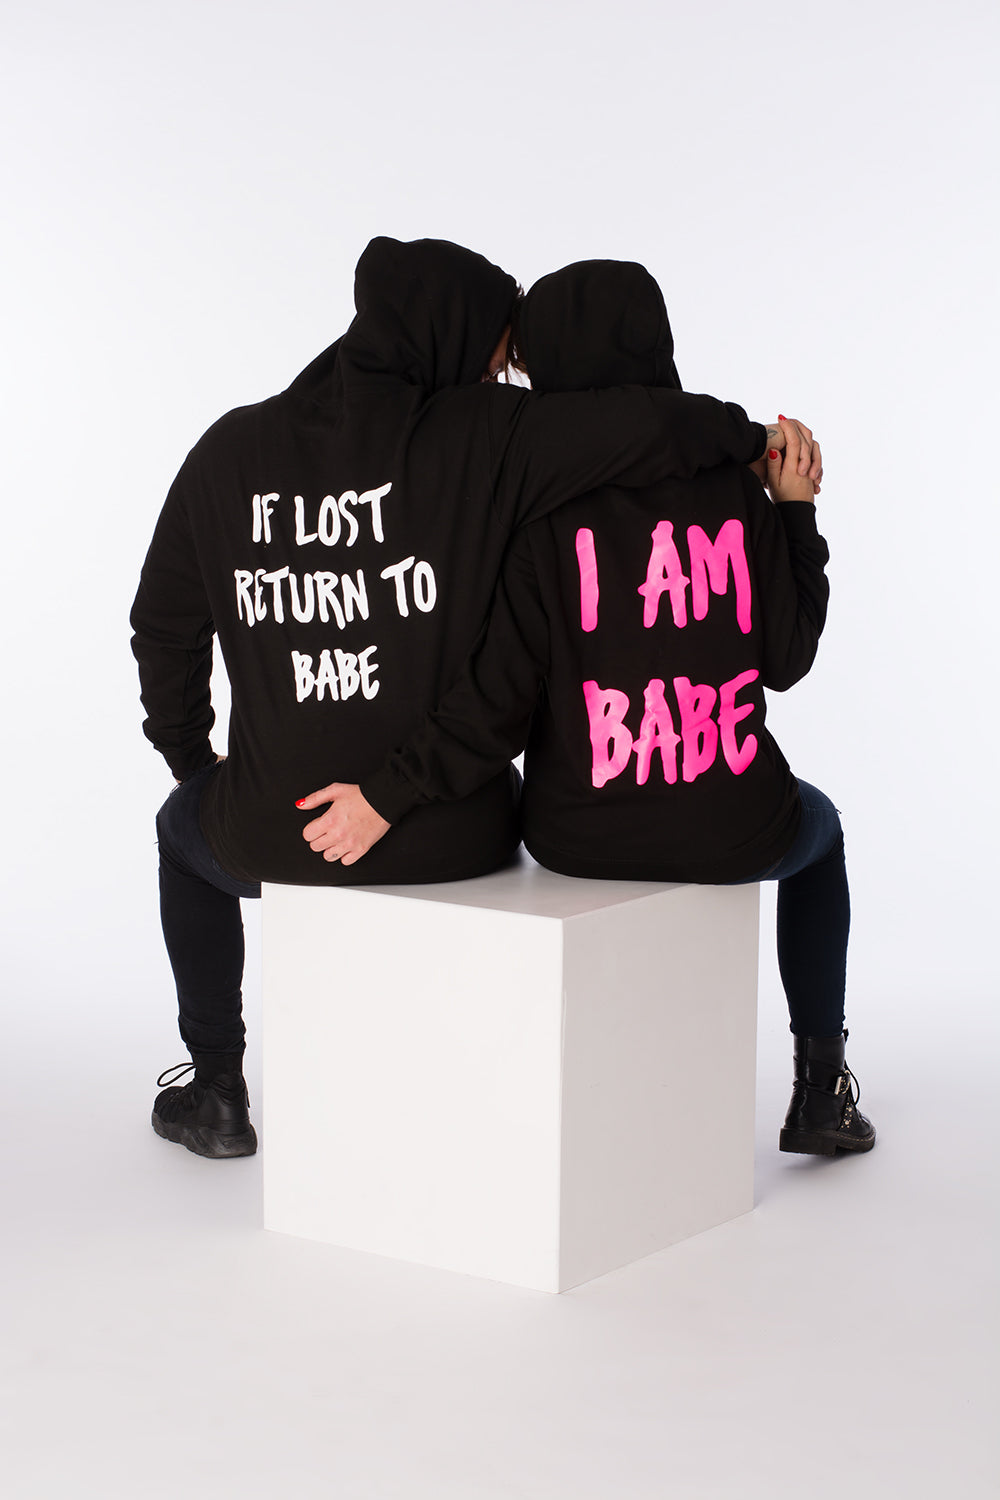 Lost Boyfriend hoodies for him and her